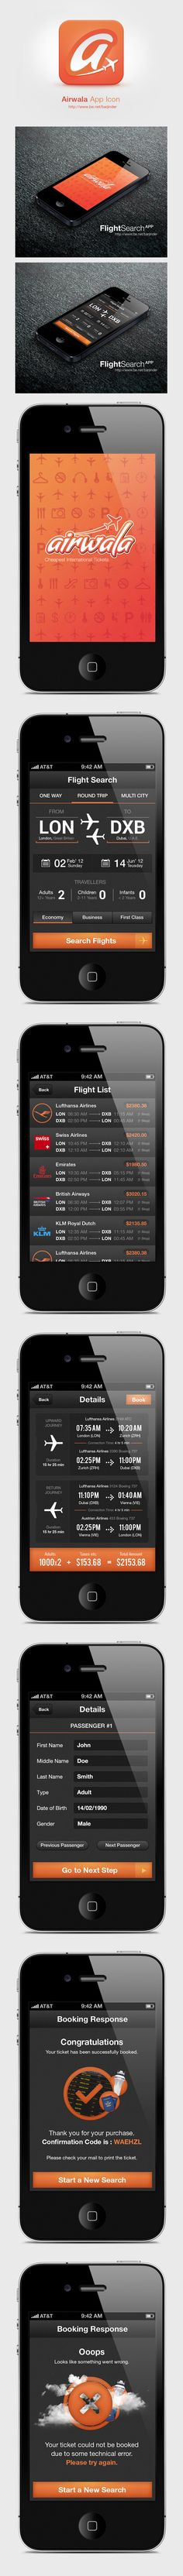 """Flight Search App - Airwala, via Behance *** """" I designed the complete UI and UX for A . Project duration was about 1 month and I am quite satisfied with the output, and so is my client. Web Design, App Ui Design, User Interface Design, Iphone Ui, Iphone Icon, Mobile Ui Design, Ui Design Inspiration, Ui Web, Apps"""